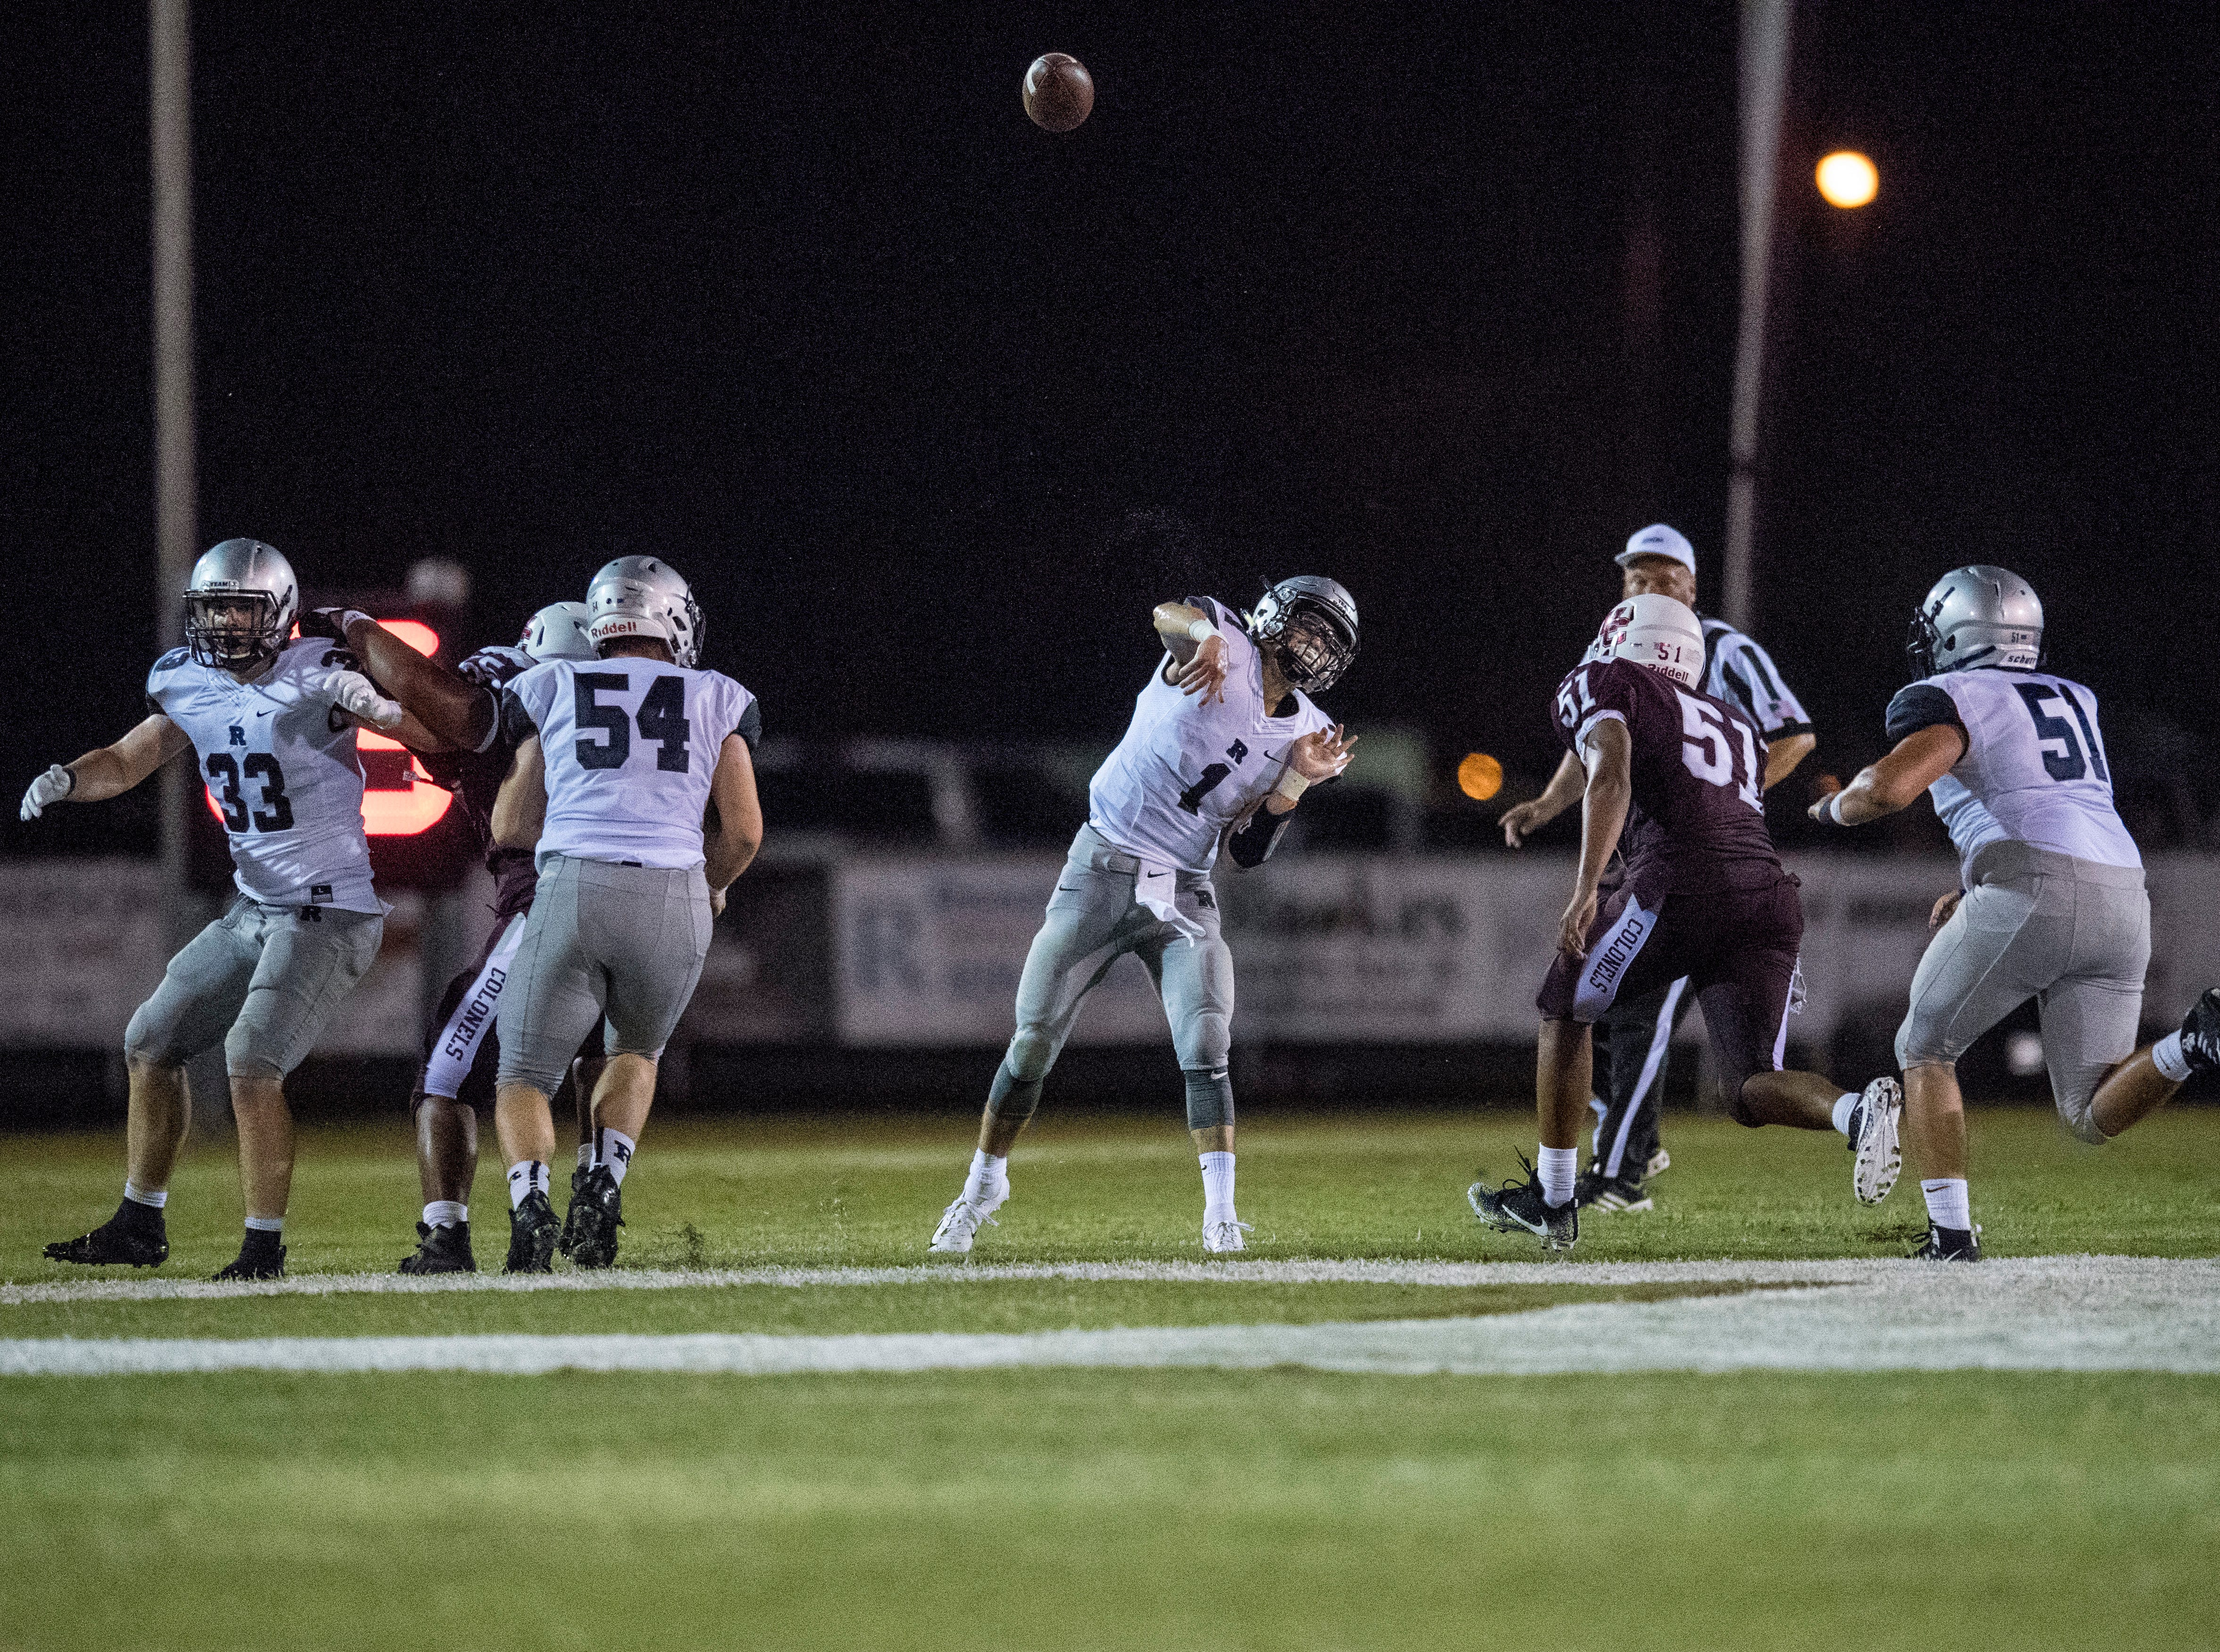 ReitzÕs Quarterback Eli Wiethop (1) throws a long pass during the Reitz vs Henderson County game at Colonel Stadium Friday, August 17, 2018. The Panthers defeated the Colonels 41-35 in the season opening game.